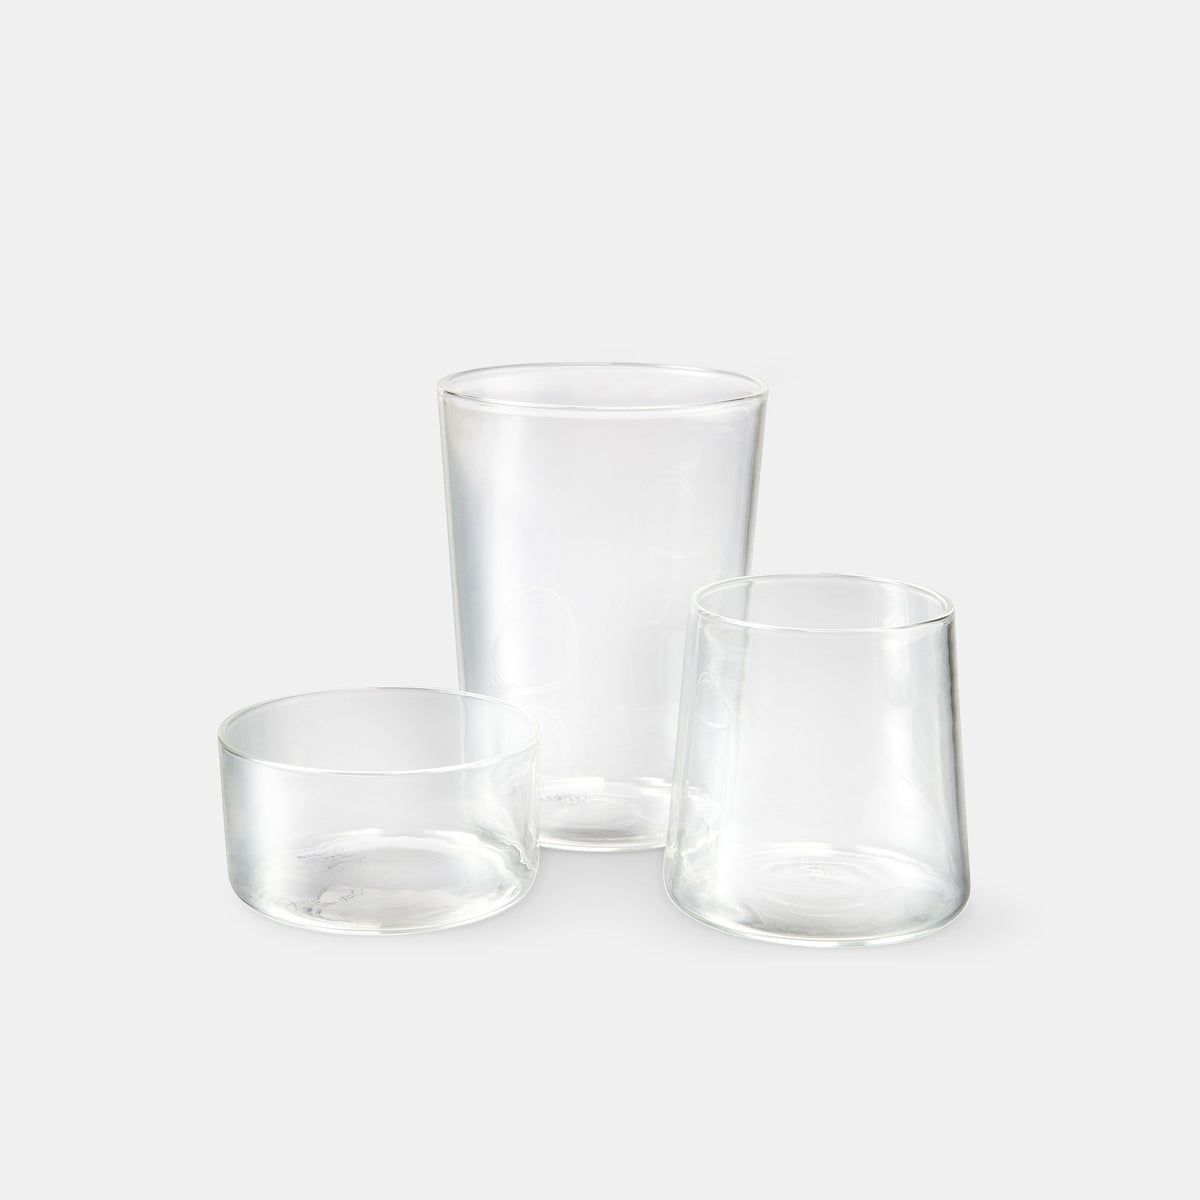 WWW - Water, Wine & Whiskey - Set of 3 Glasses - Monologue London